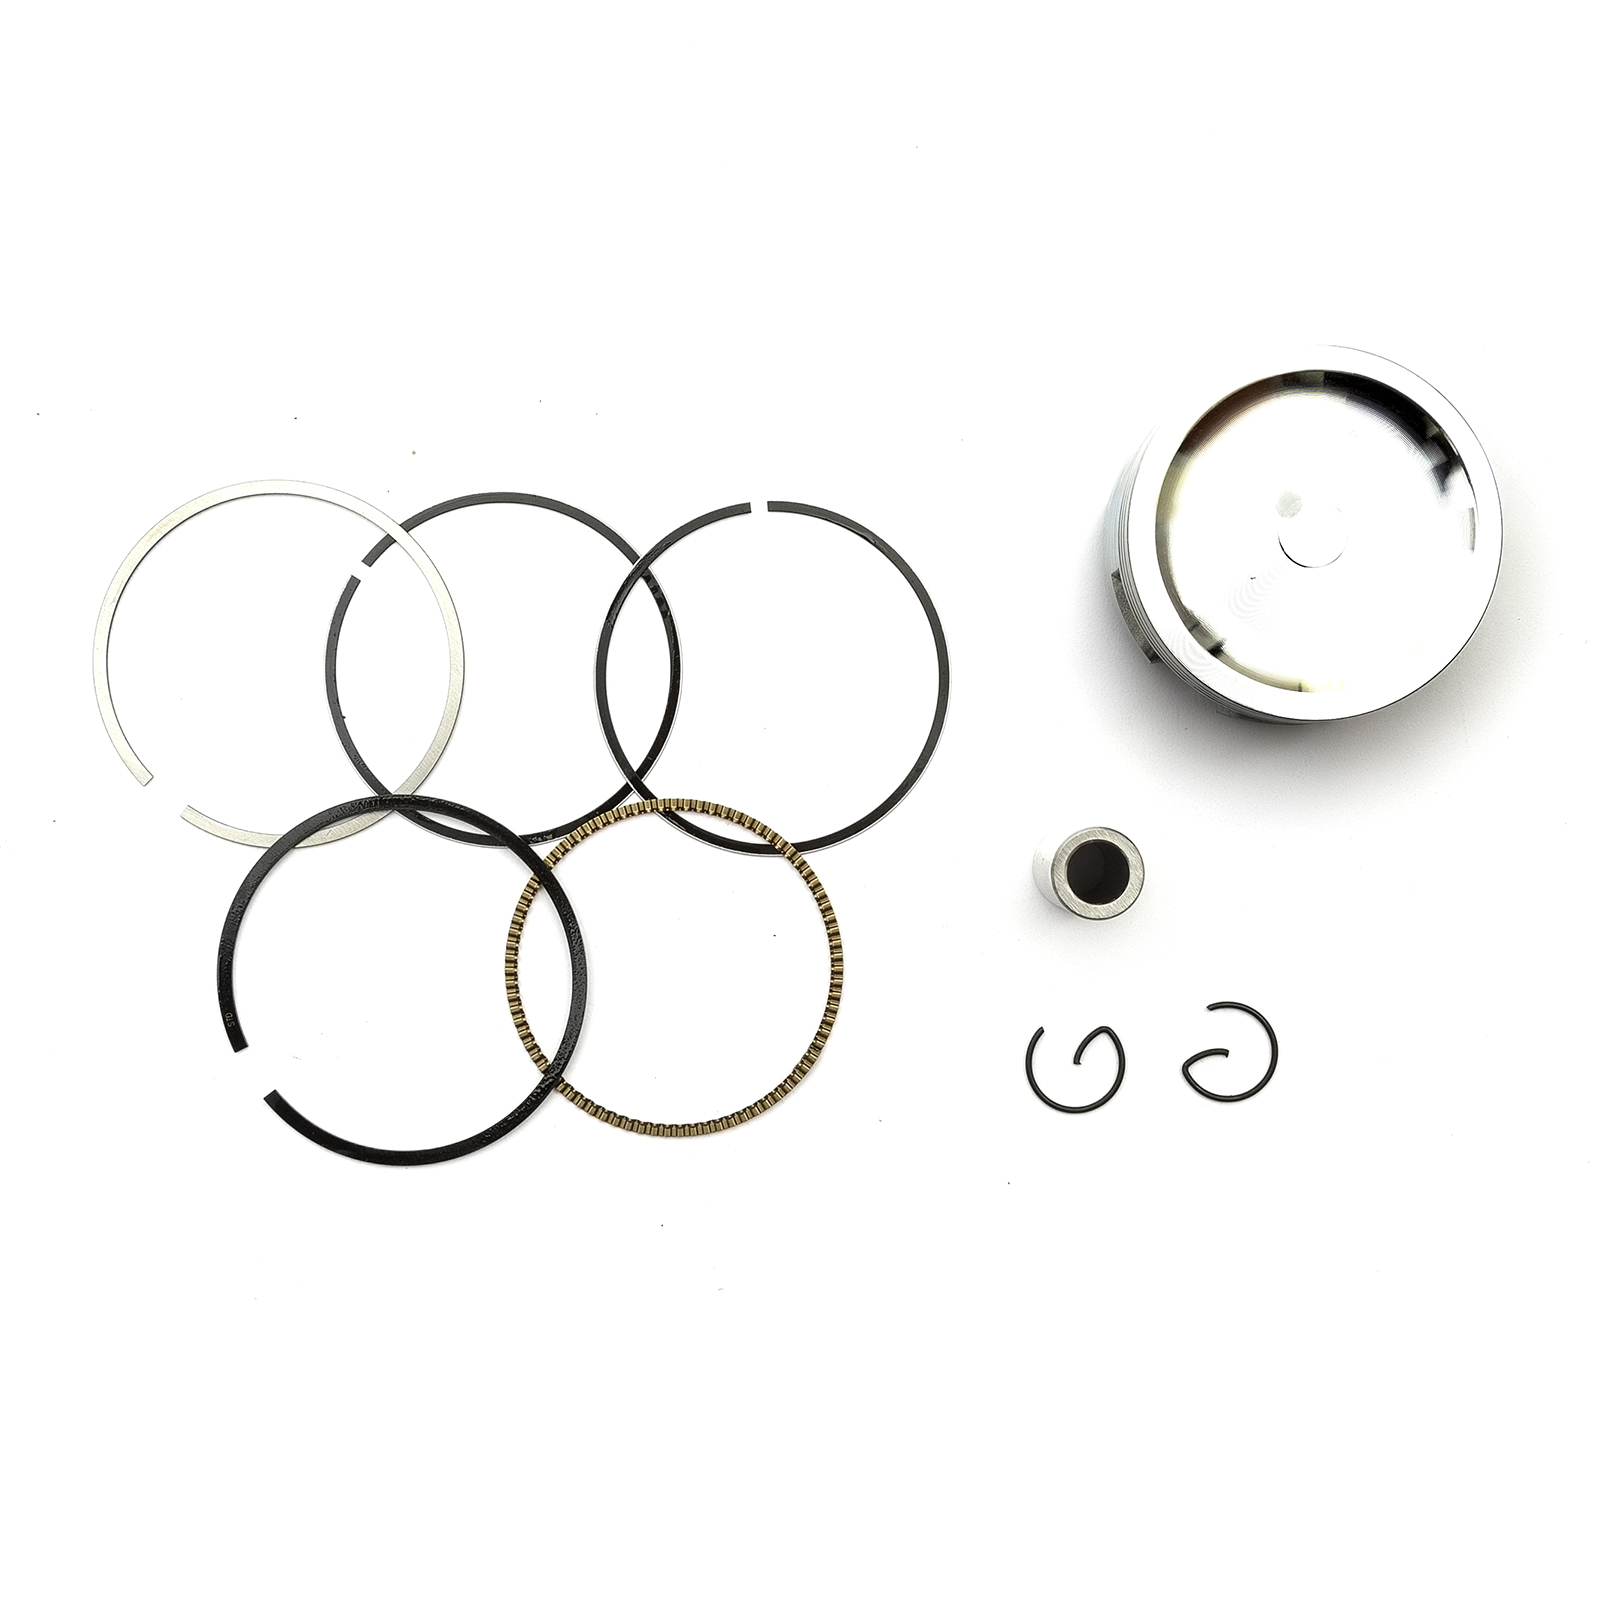 Pit Dirt Quad Scooter Moto 52 4mm Kit Piston 110cc 125cc